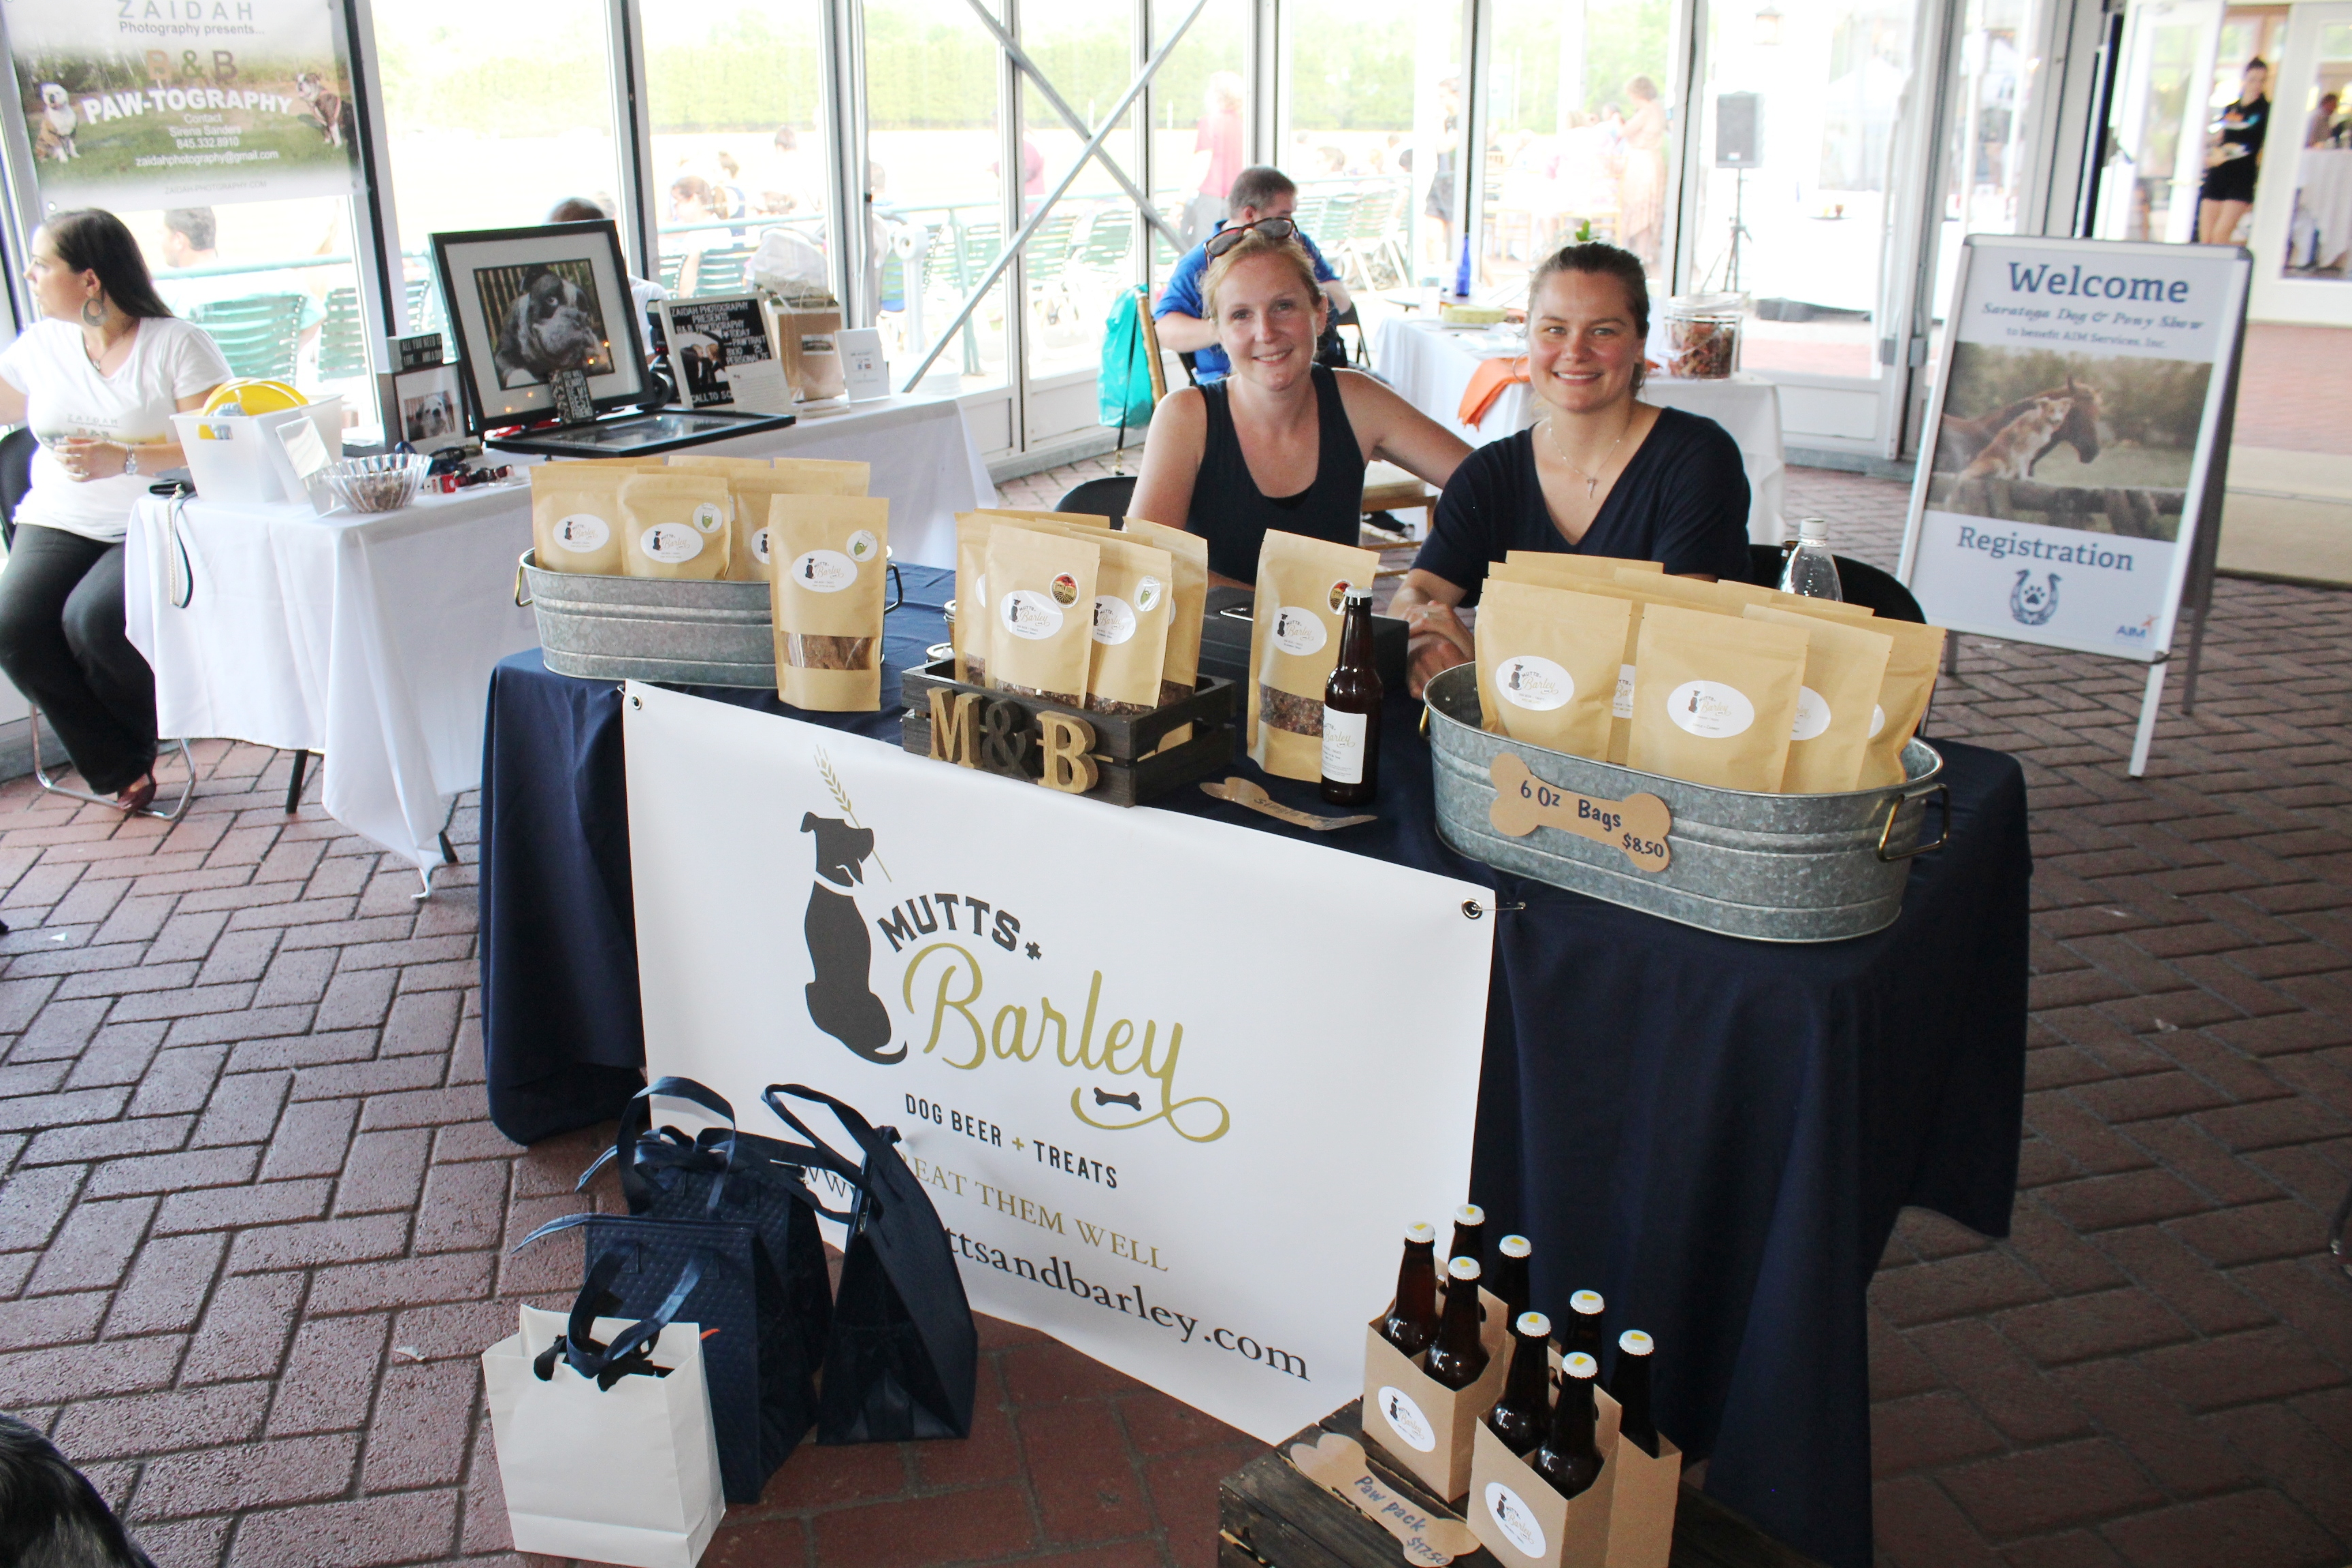 Mutts and Barley vendor at the Saratoga Dog & Pony Show to benefit AIM Services, Inc.